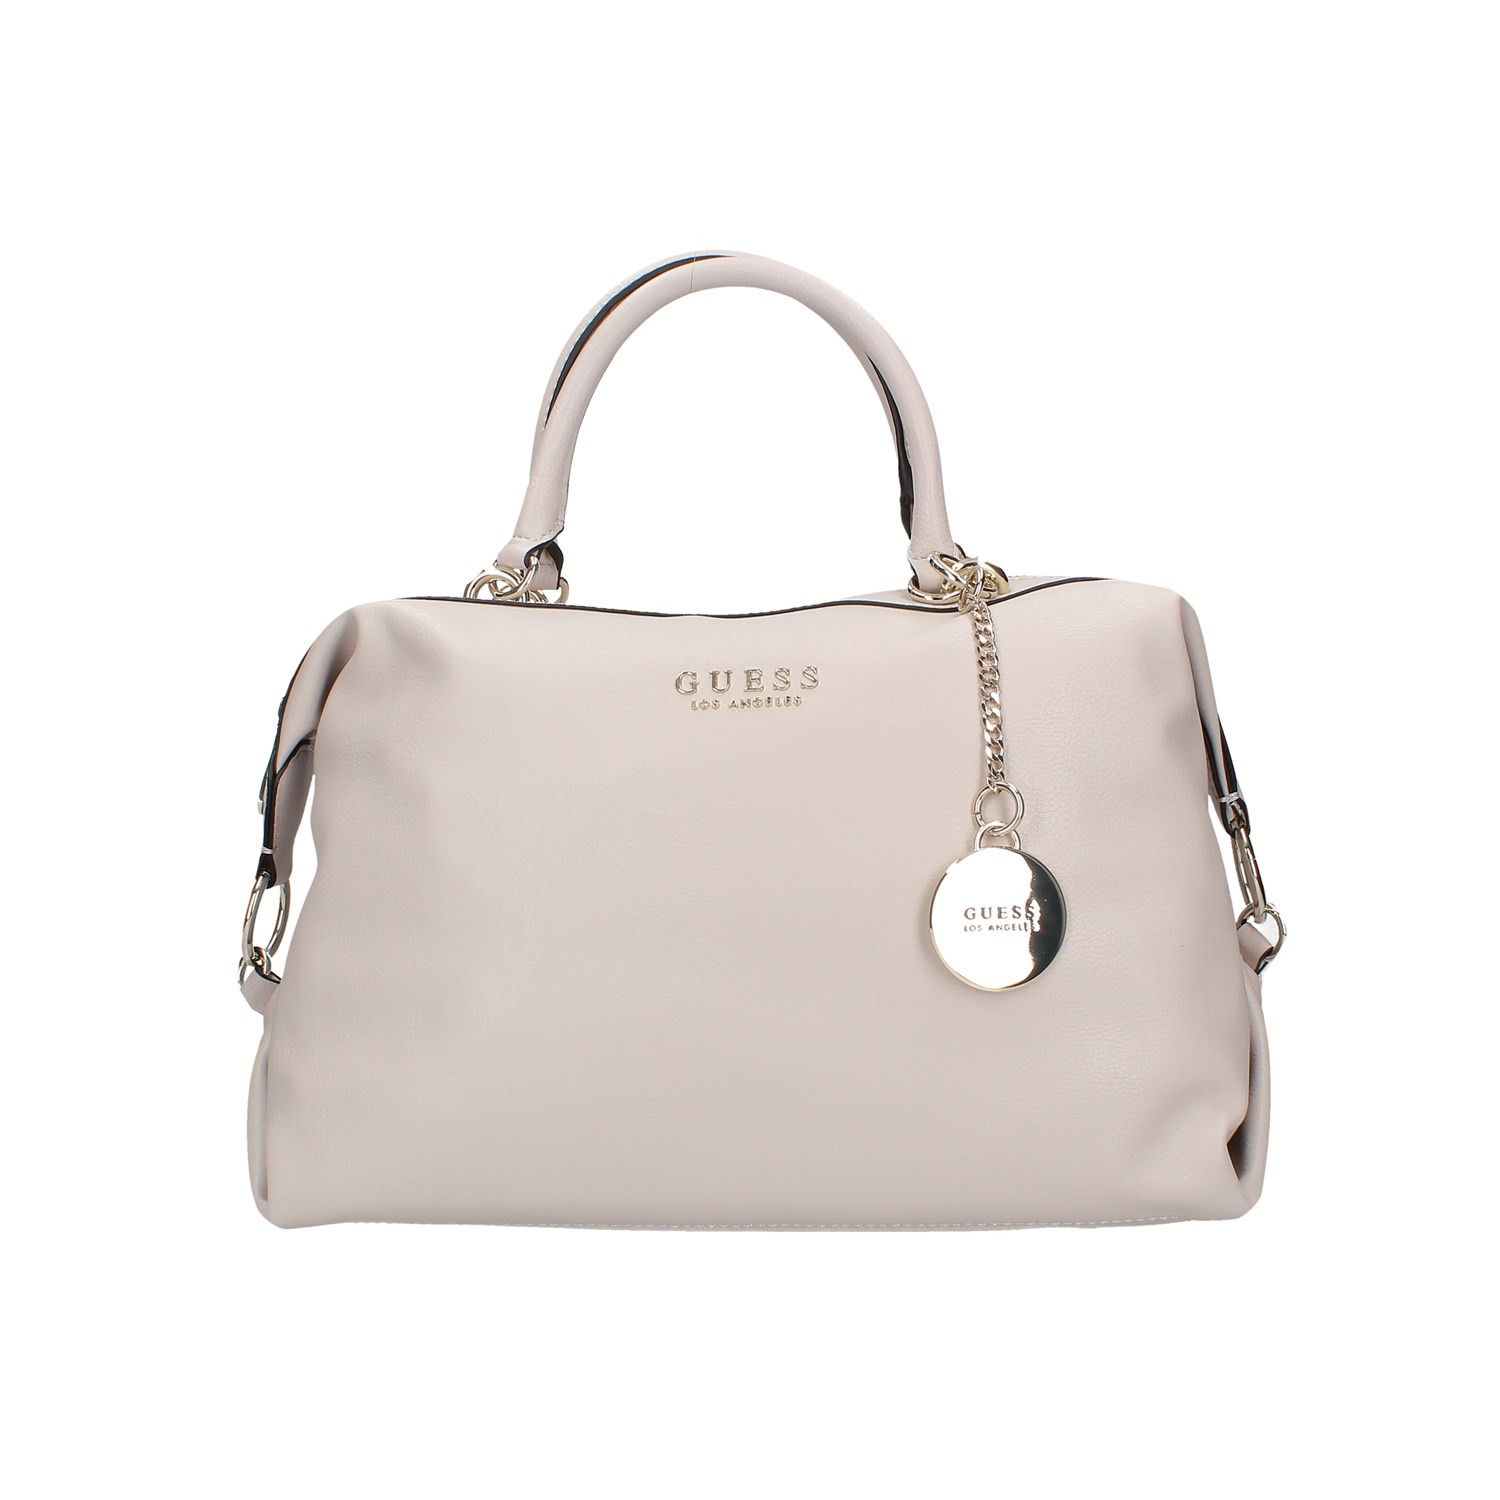 Beige Stage Borsa Donna Cary Mano A Accessories Guess Tqwxgv8q